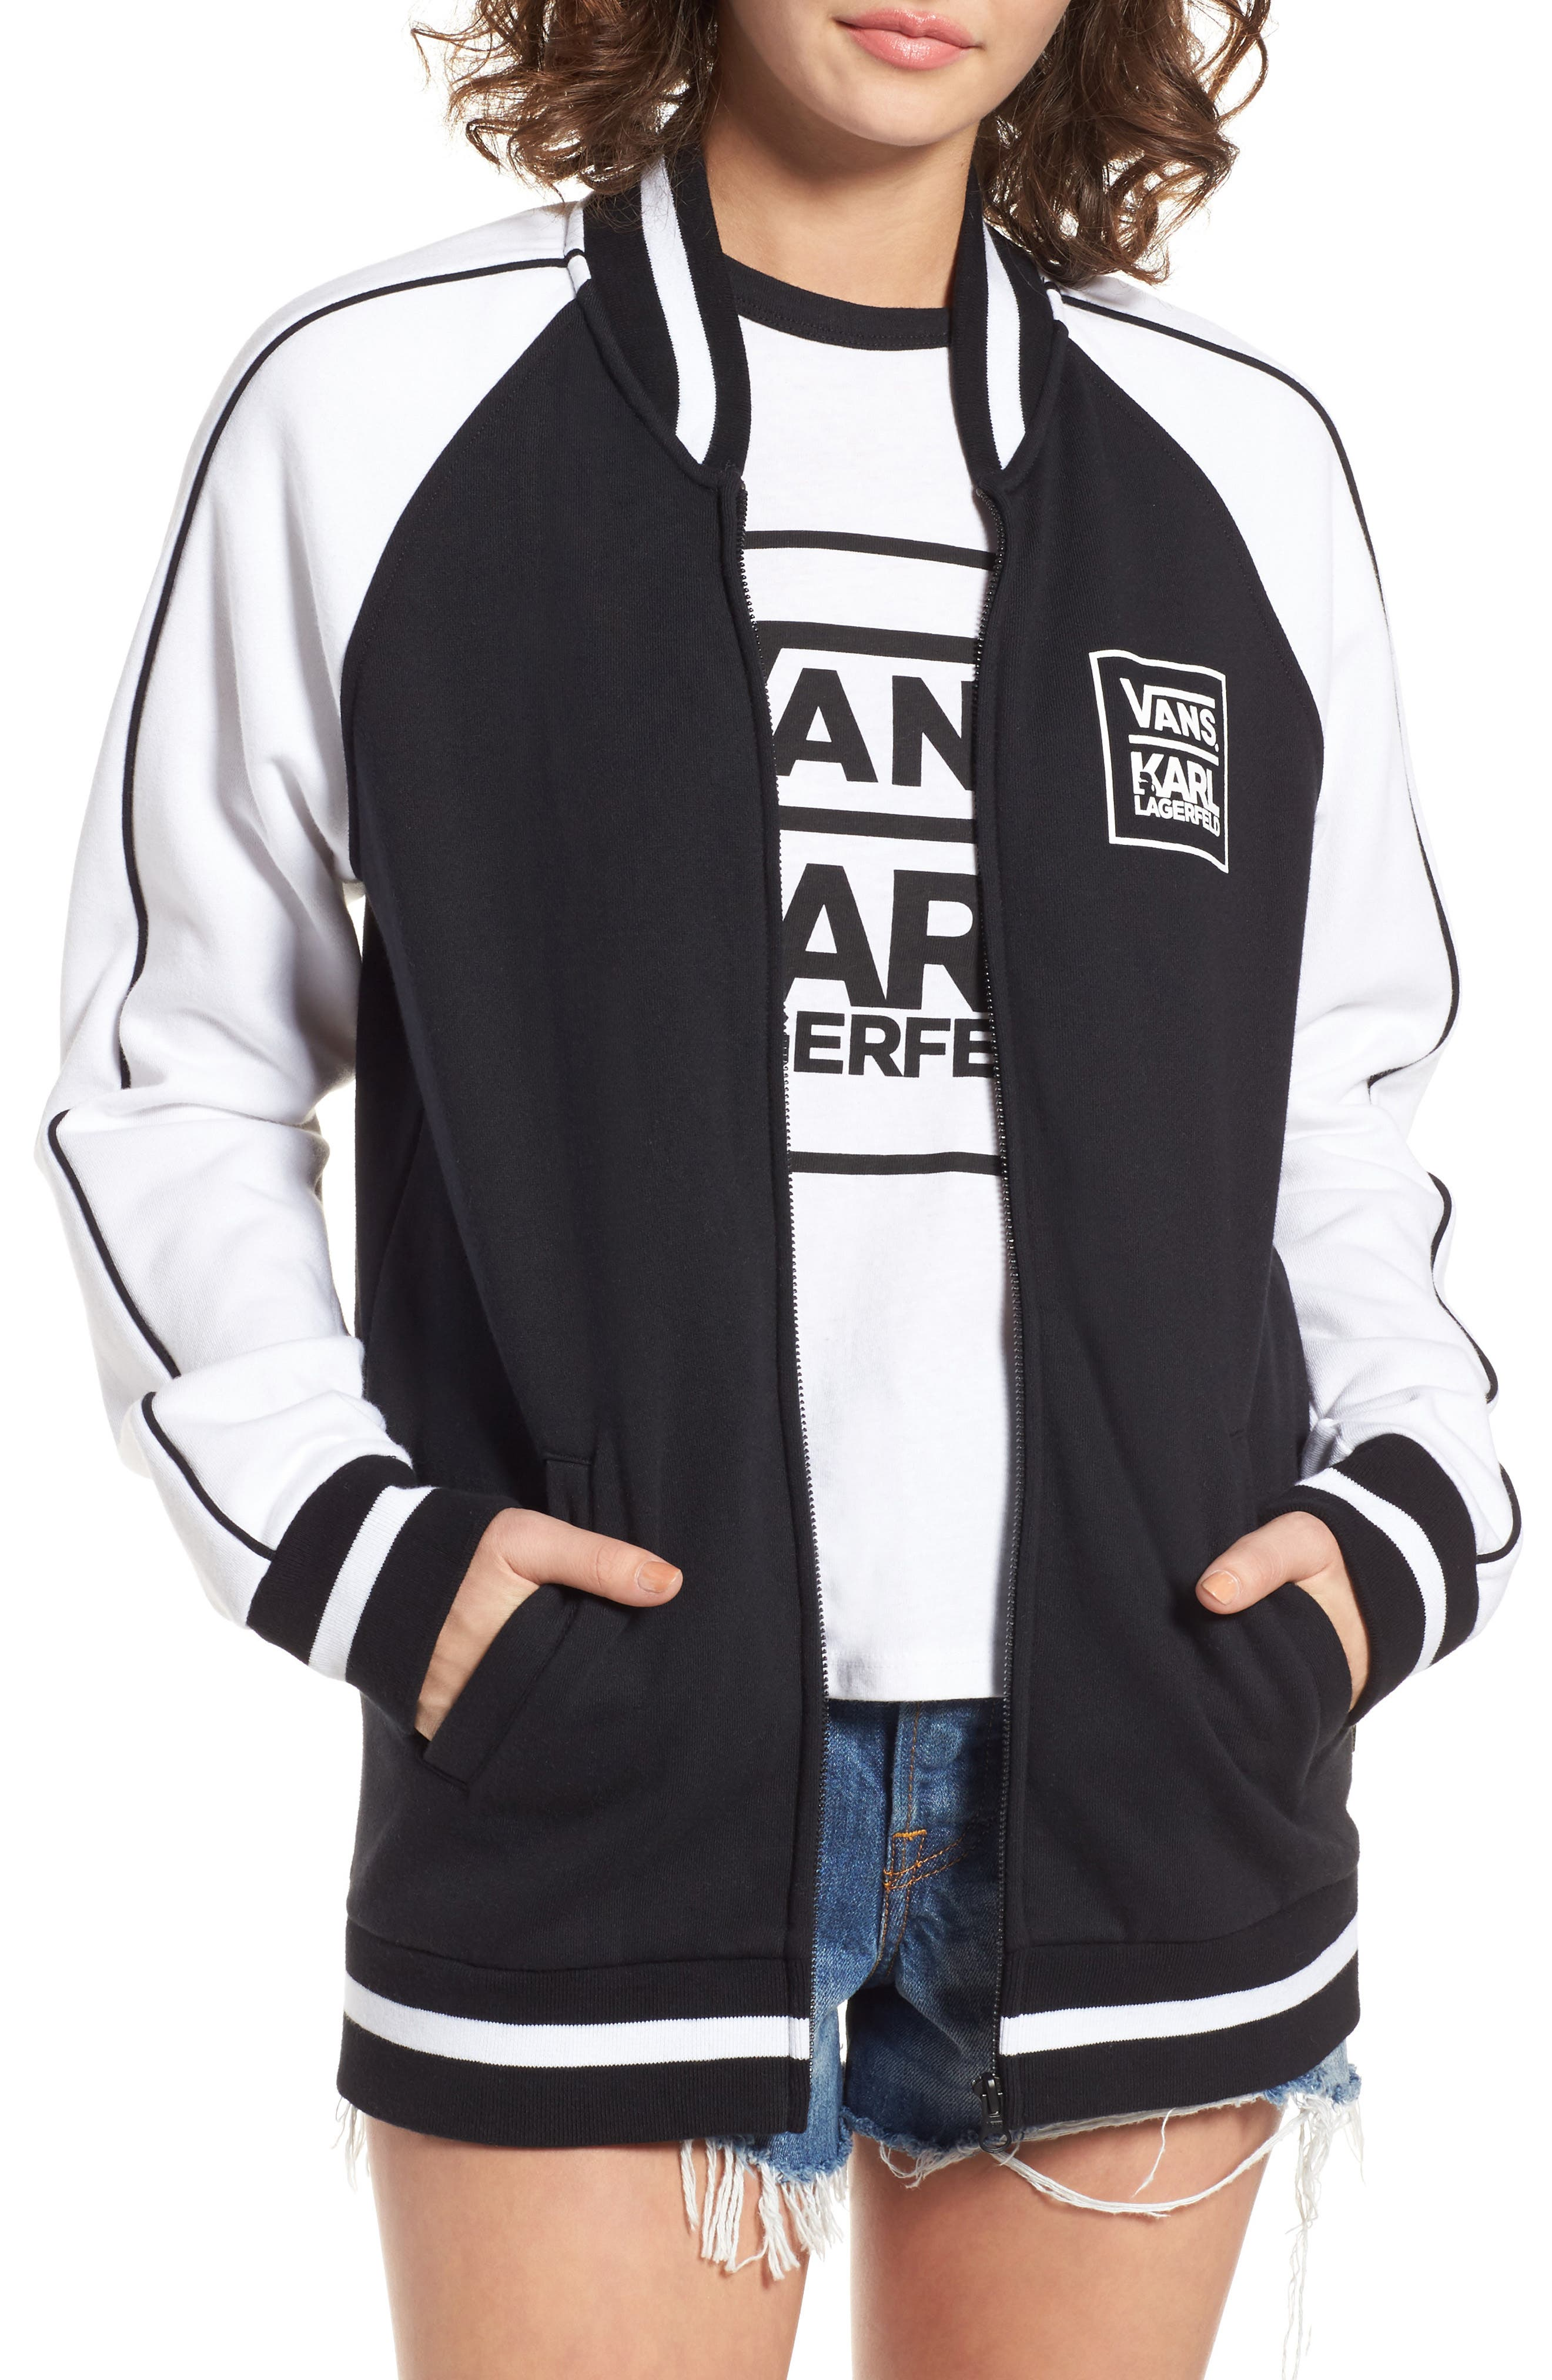 x KARL LAGERFELD Bomber Jacket,                         Main,                         color, 001